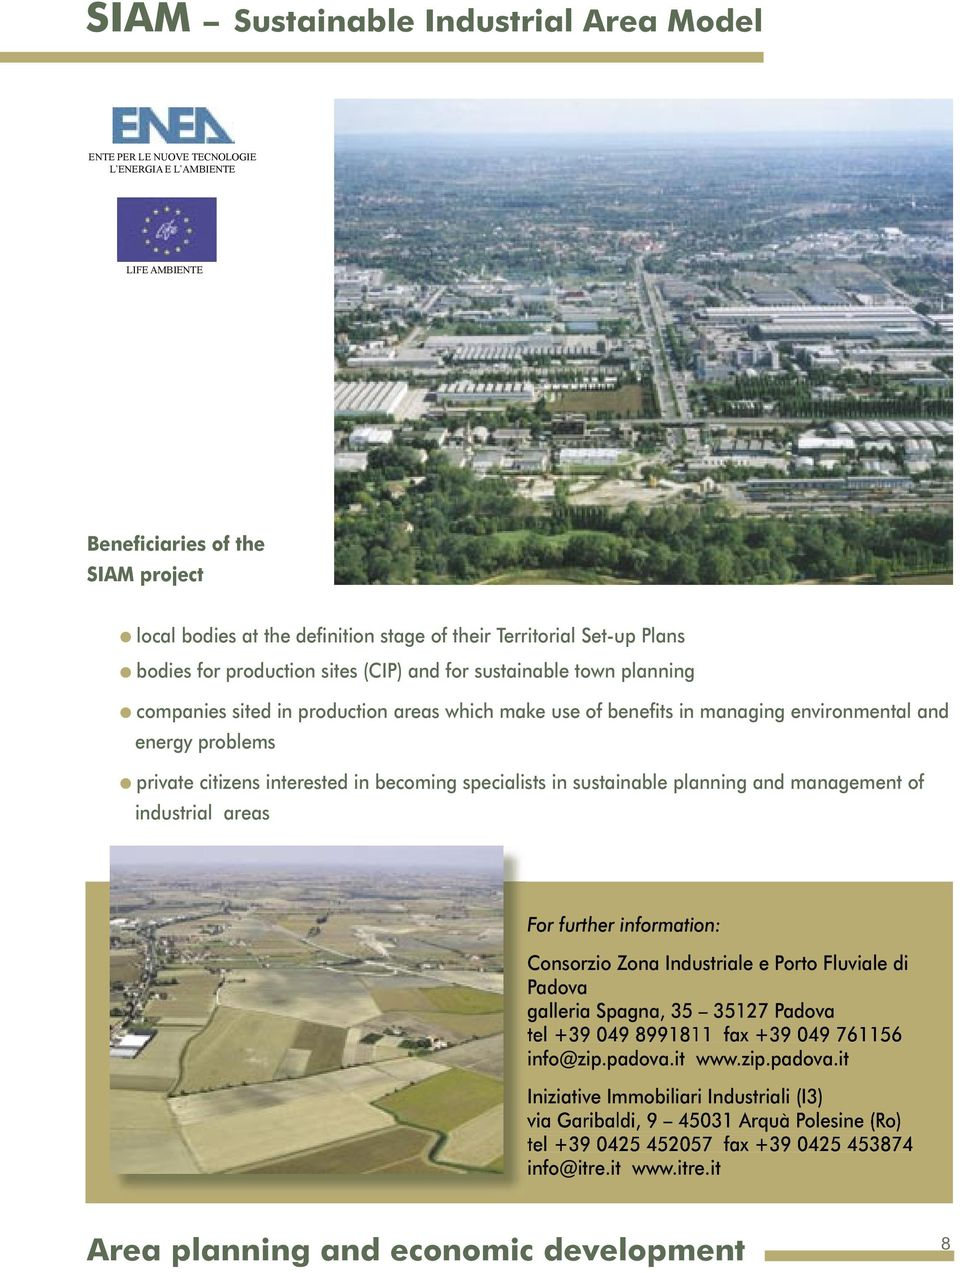 specialists in sustainable planning and management of industrial areas For further information: Consorzio Zona Industriale e Porto Fluviale di Padova galleria Spagna, 35 35127 Padova tel +39 049